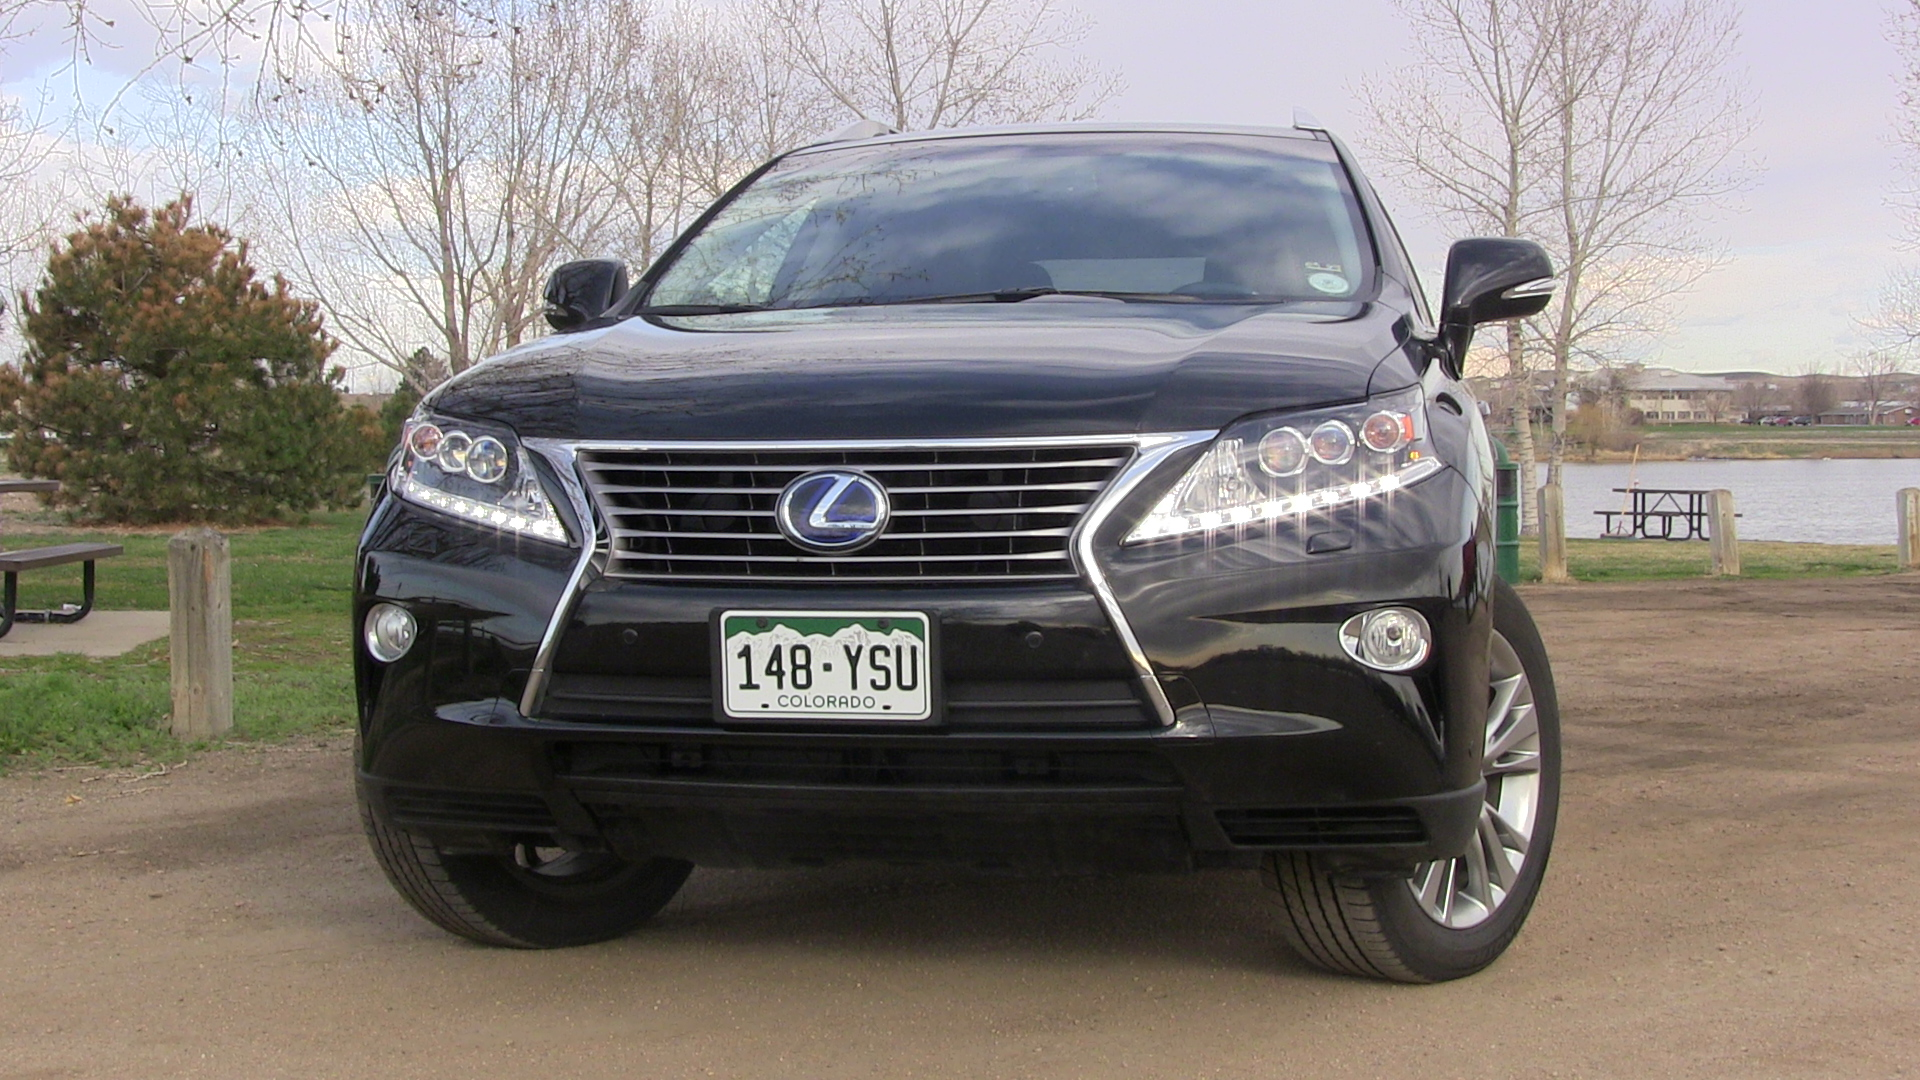 2014 Lexus RX 450h Hybrid of AWD Luxury [review] The Fast Lane Car